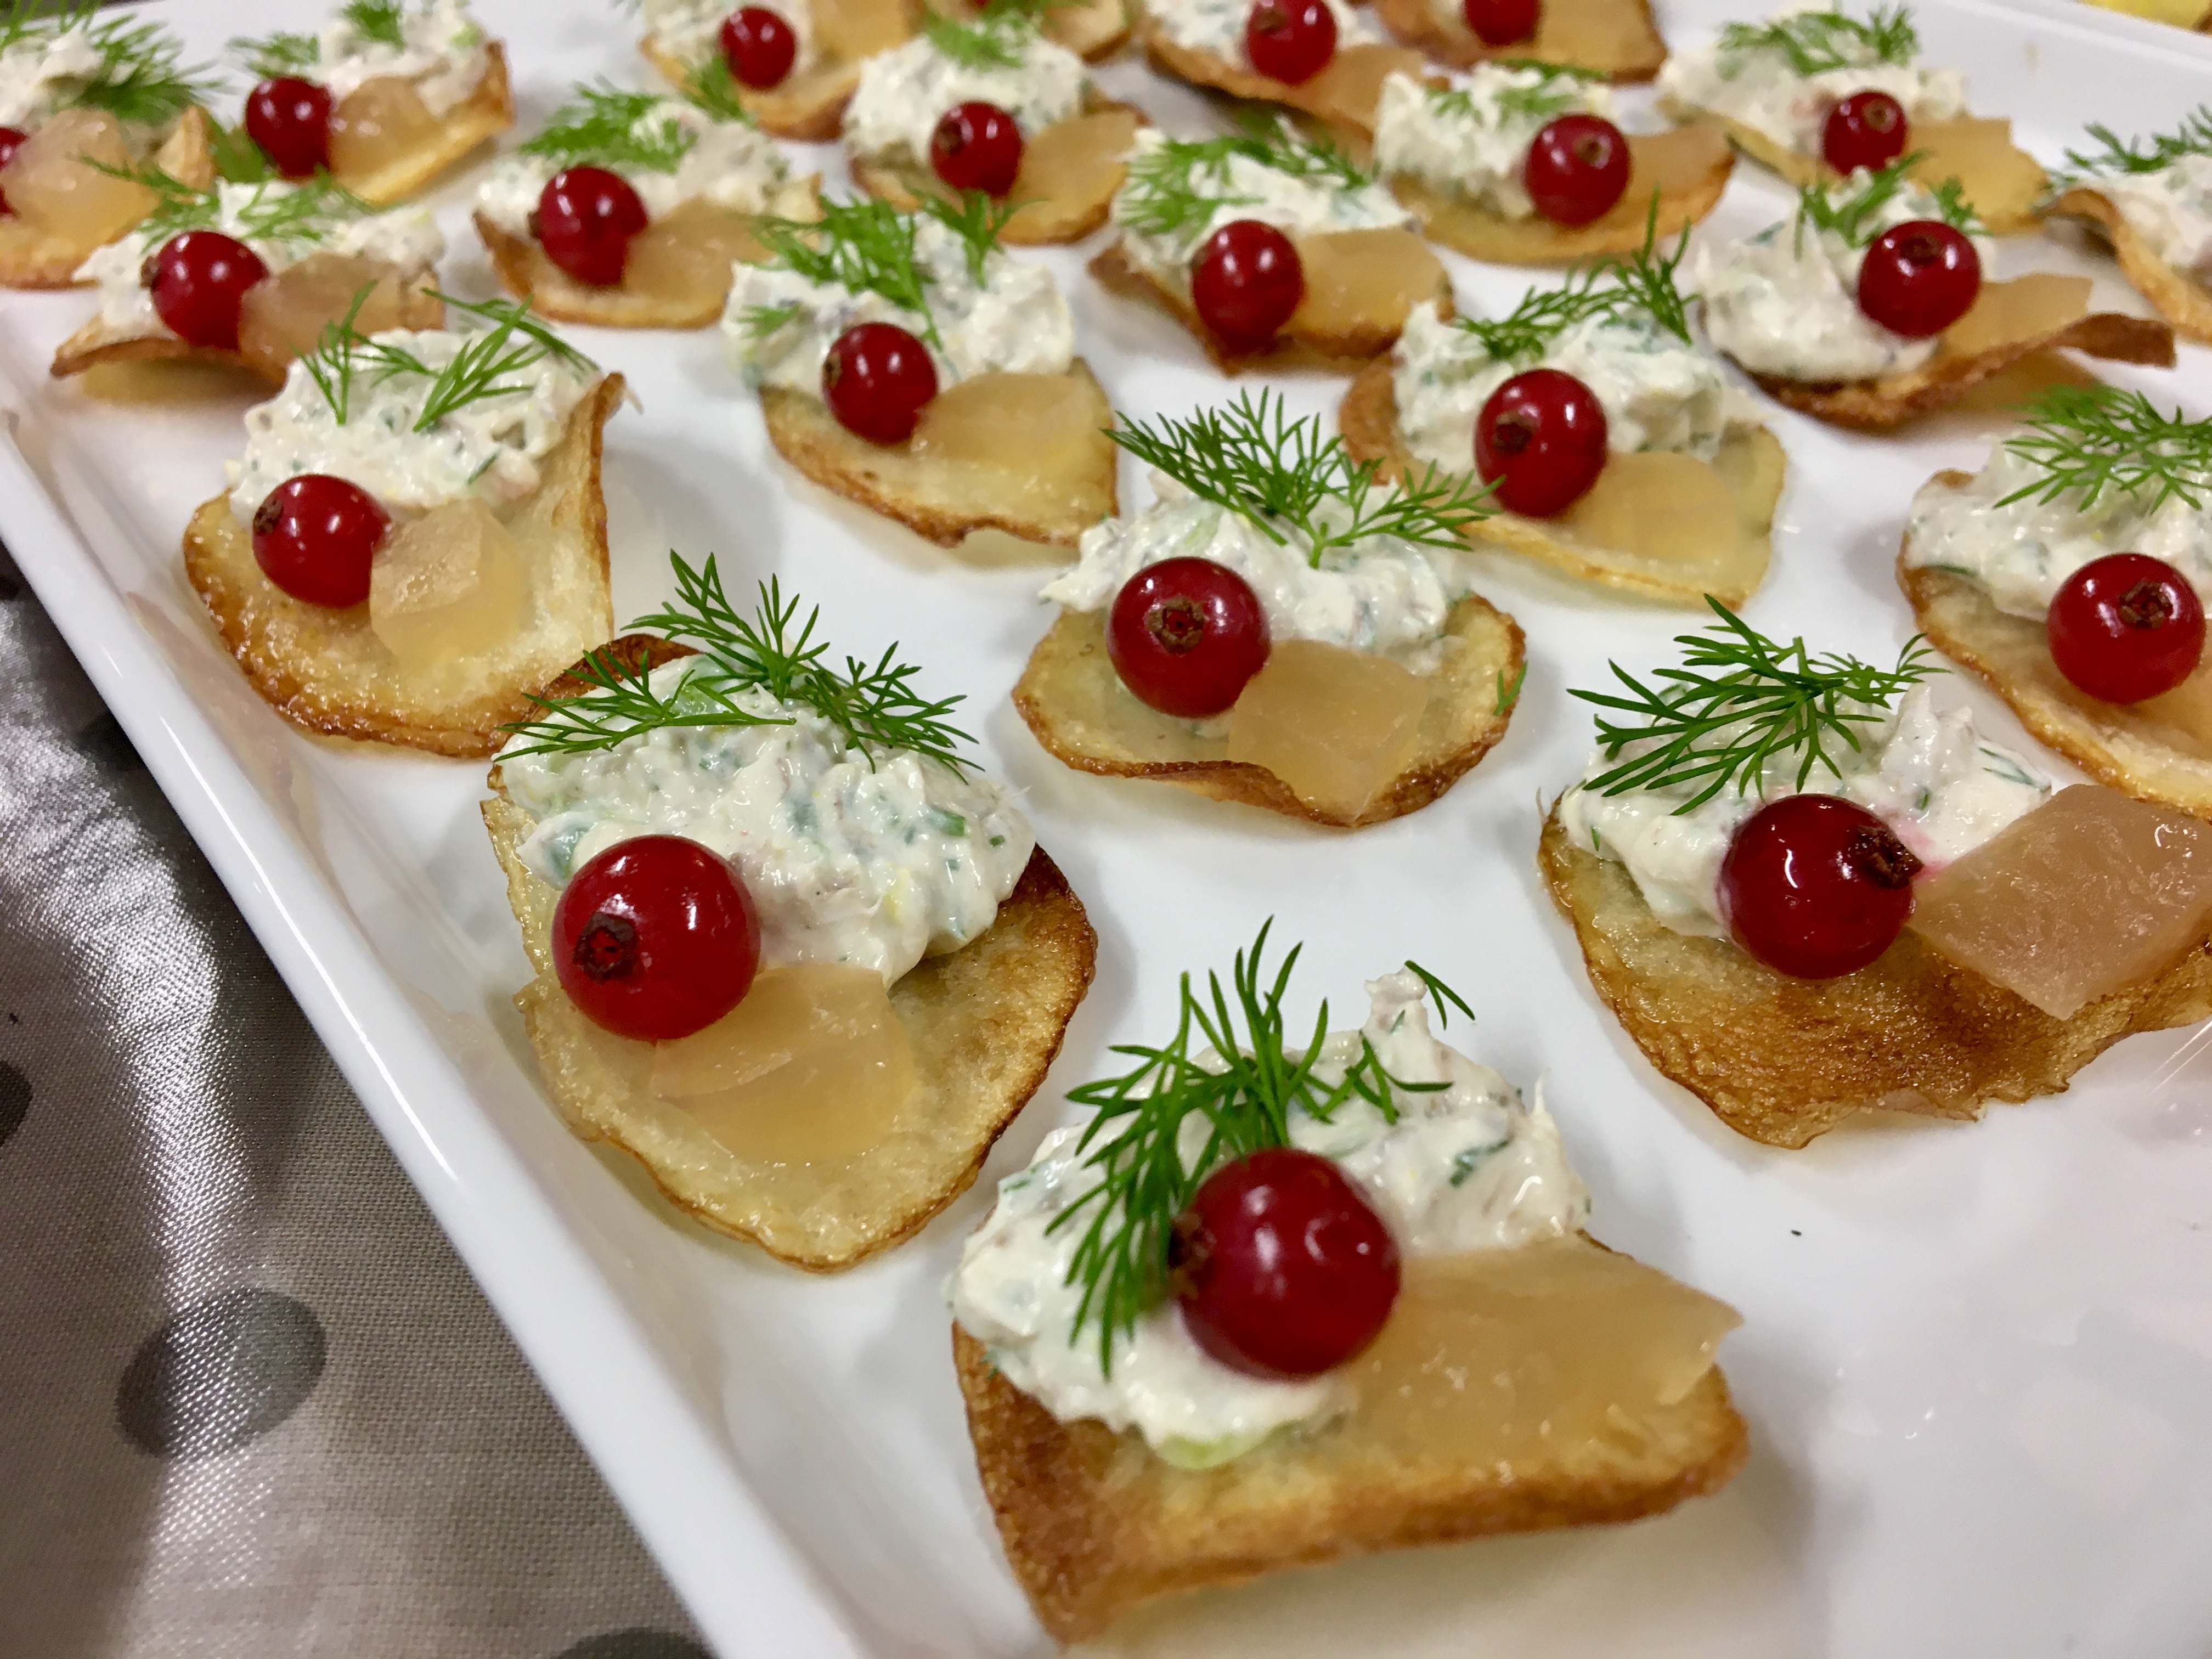 Finger Food With Jolanta – Smoked Mackerel Pâté With Dill And Apple Jelly